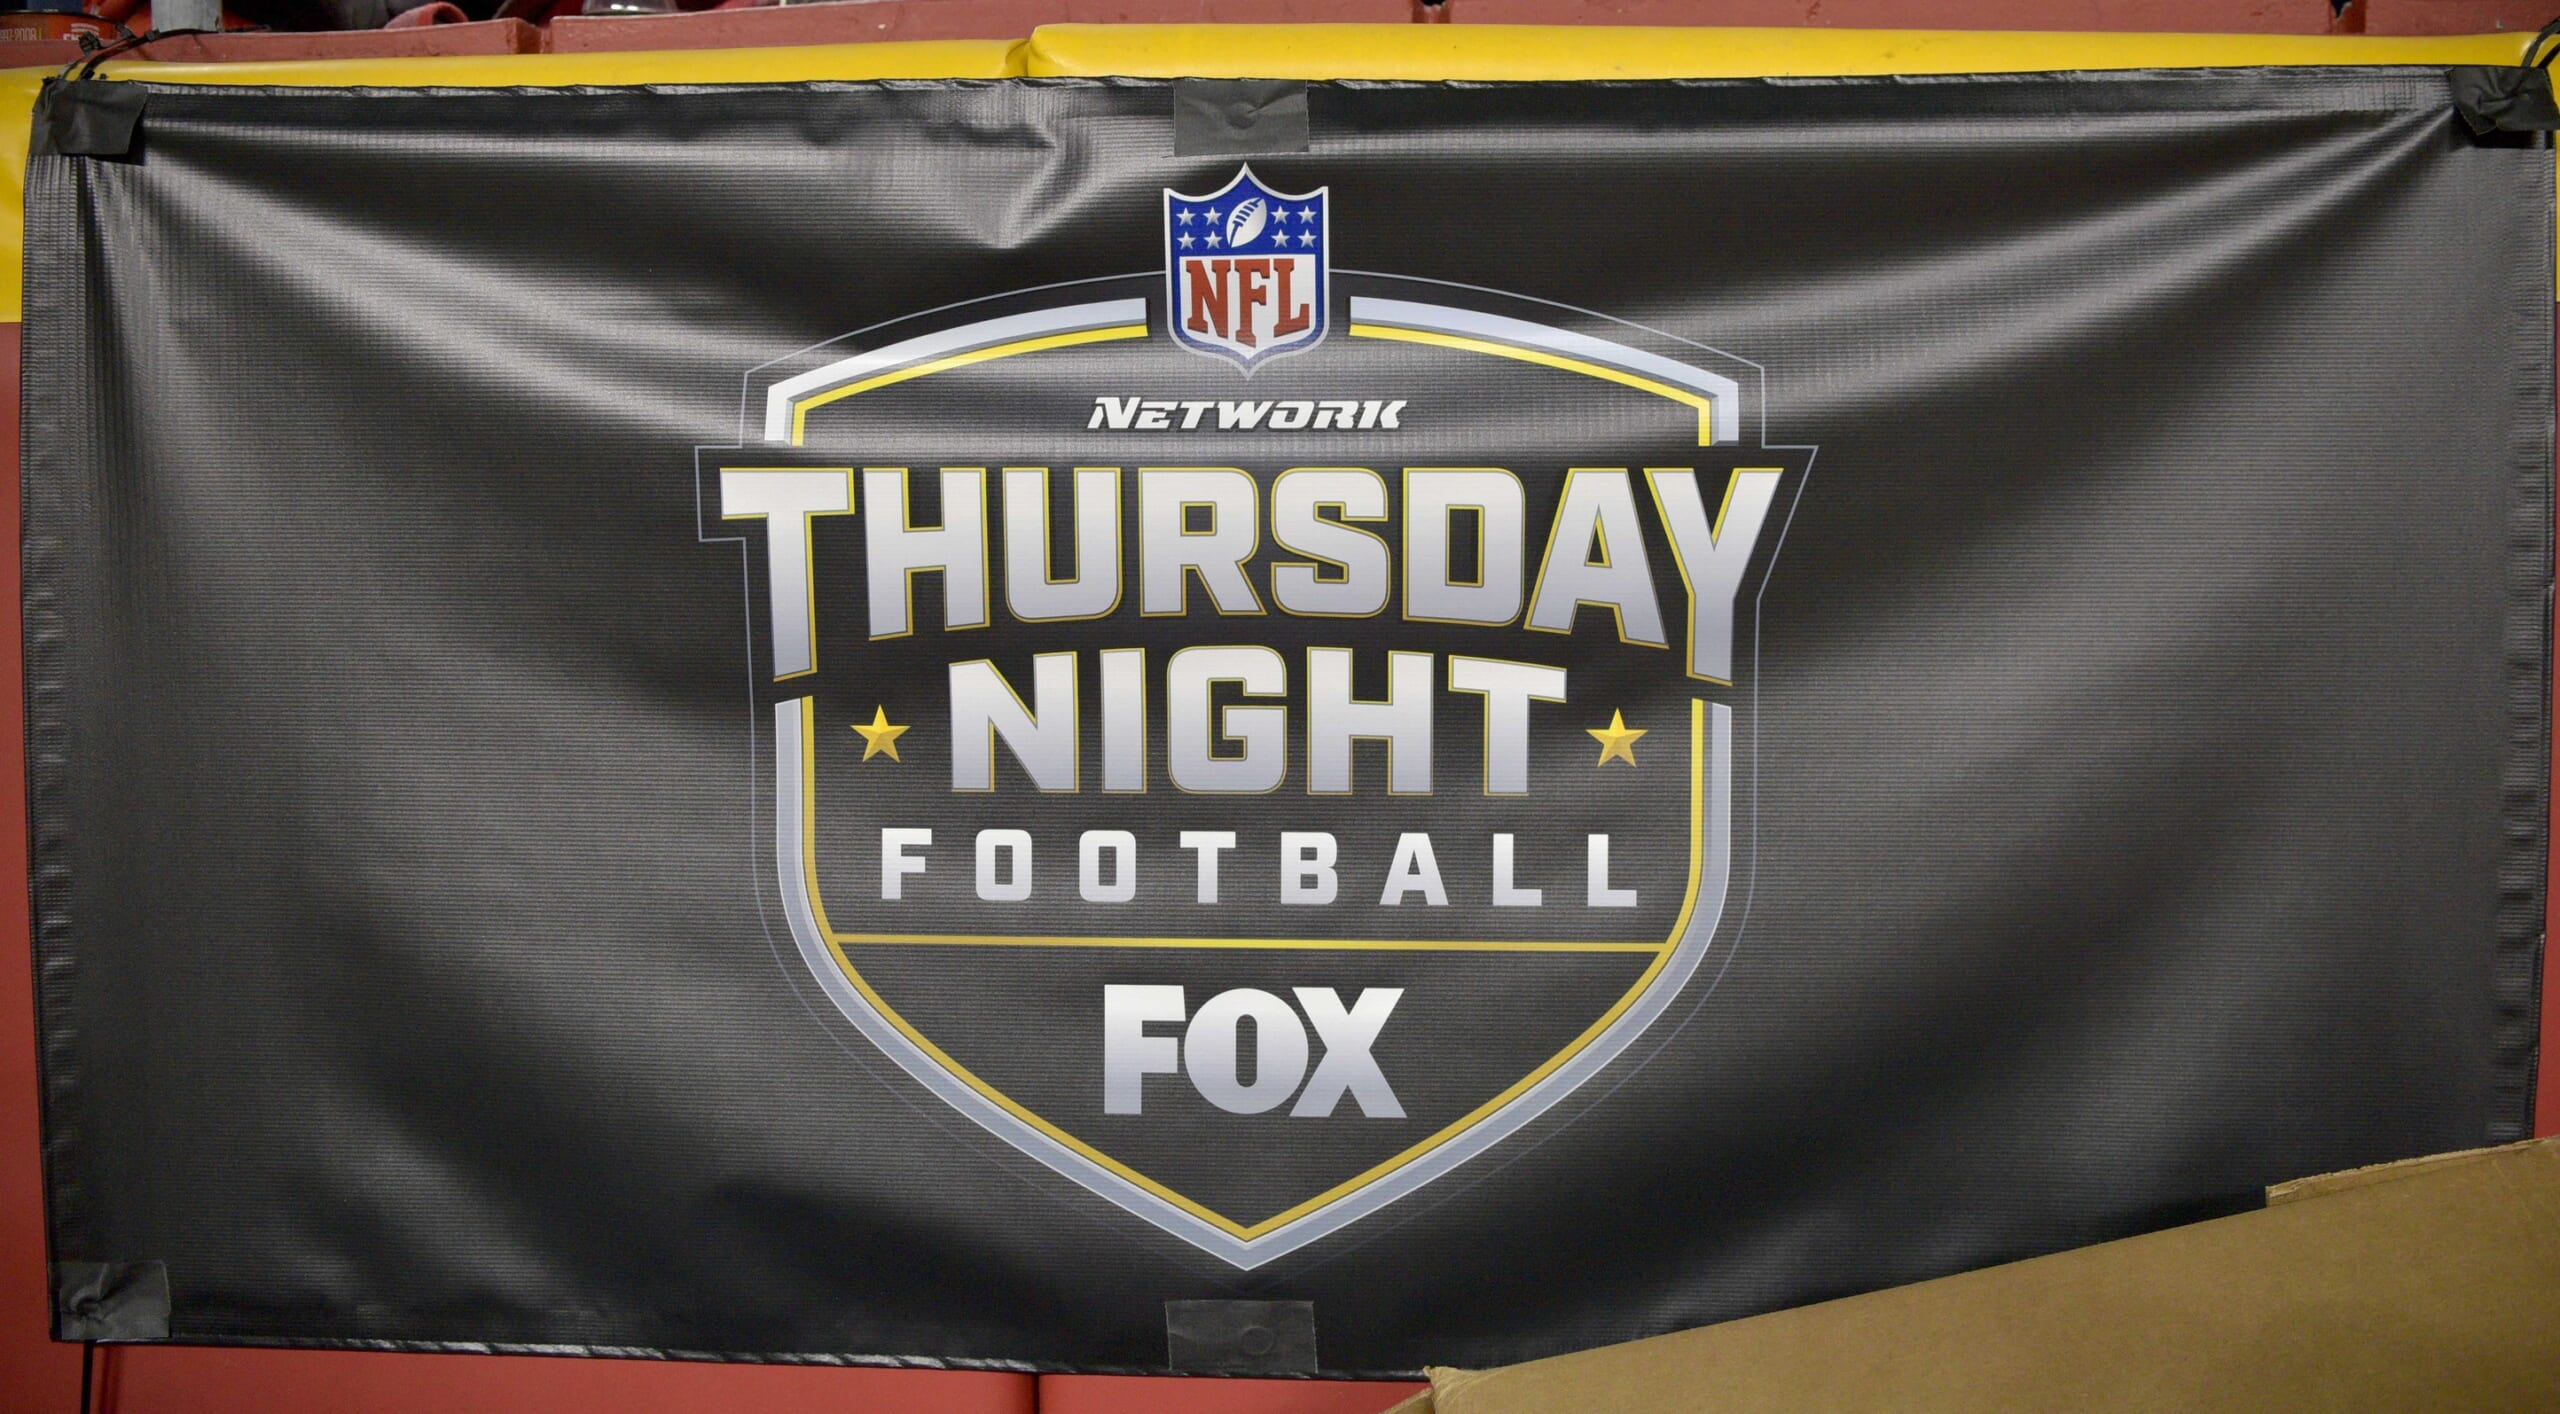 Nfl Ratings Thursday Night Football Week 3 Game Suffers Stunning Ratings Hit